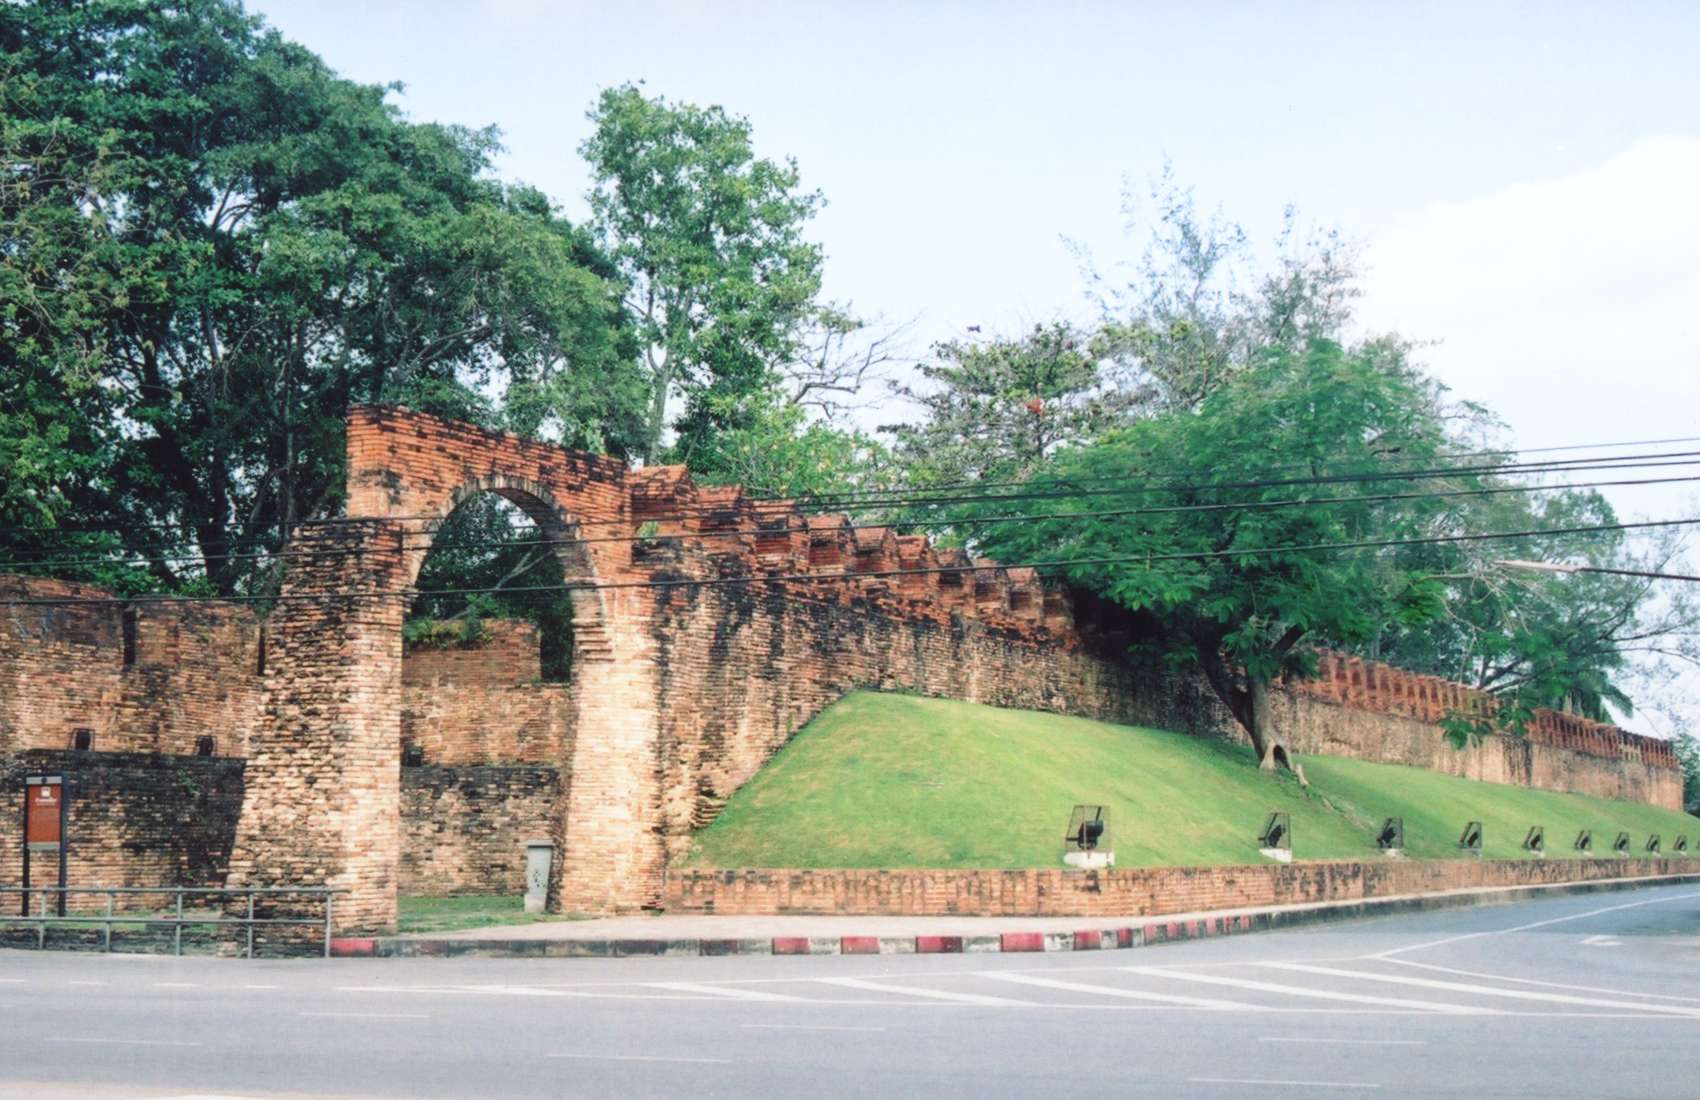 File:Nakhon Si Thammarat city wall.jpg - Wikipedia, the free ...